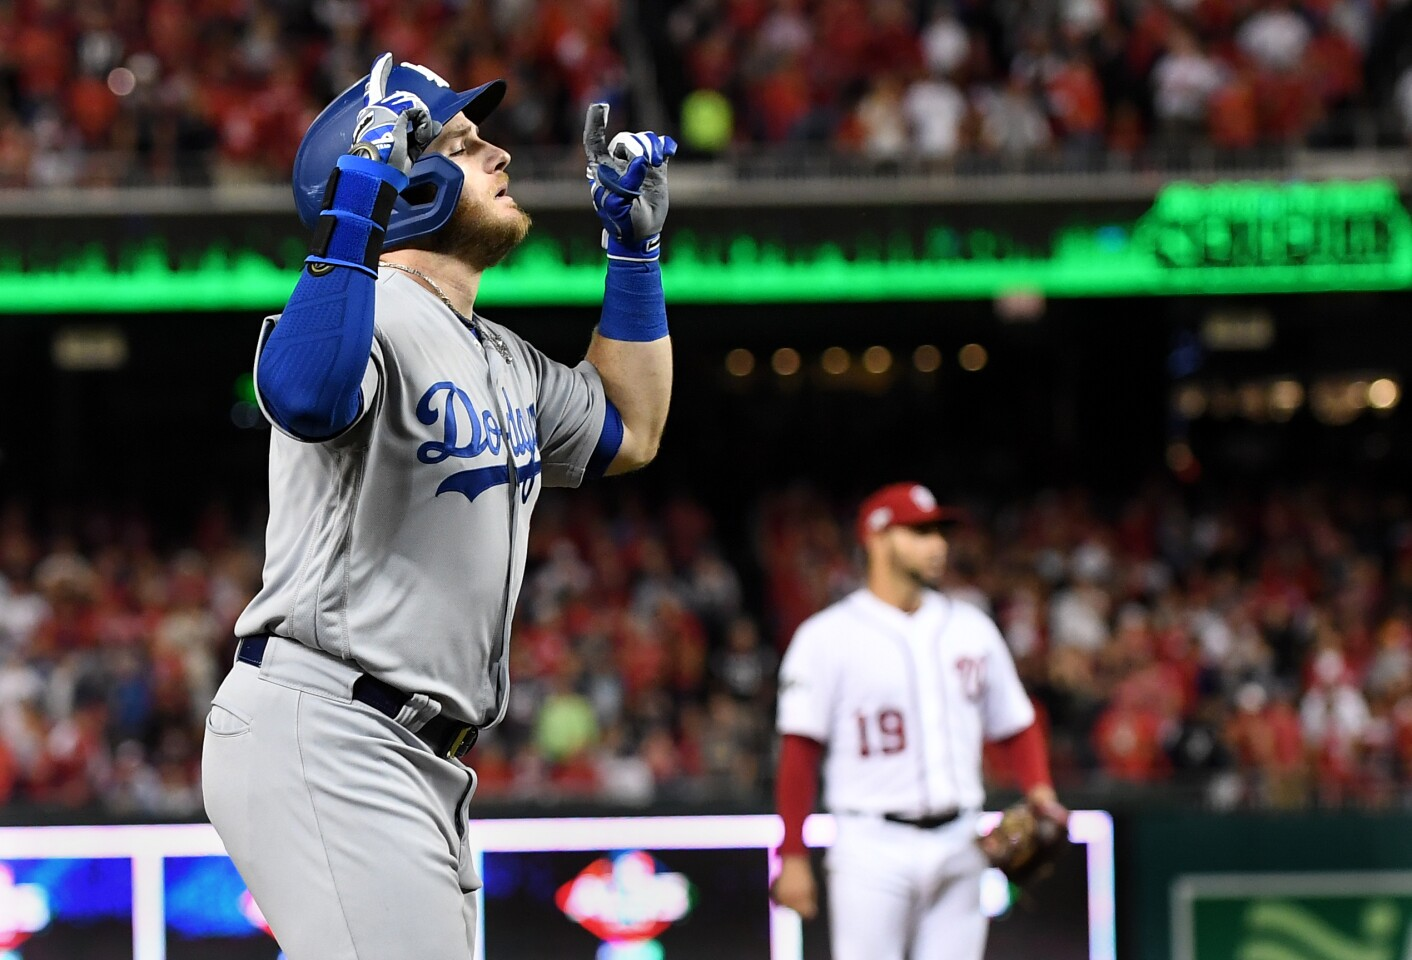 WASHINGTON D.C., OCTOBER 4, 2019-Dodgers Max Muncy celebrates his solo home run in front of Nationals pitcher Anibal Sanchez in the 5th inning in Game 3 of the NLDS at Nationals Stadium Sunday. (Wally Skalij/Los Angeles Times)